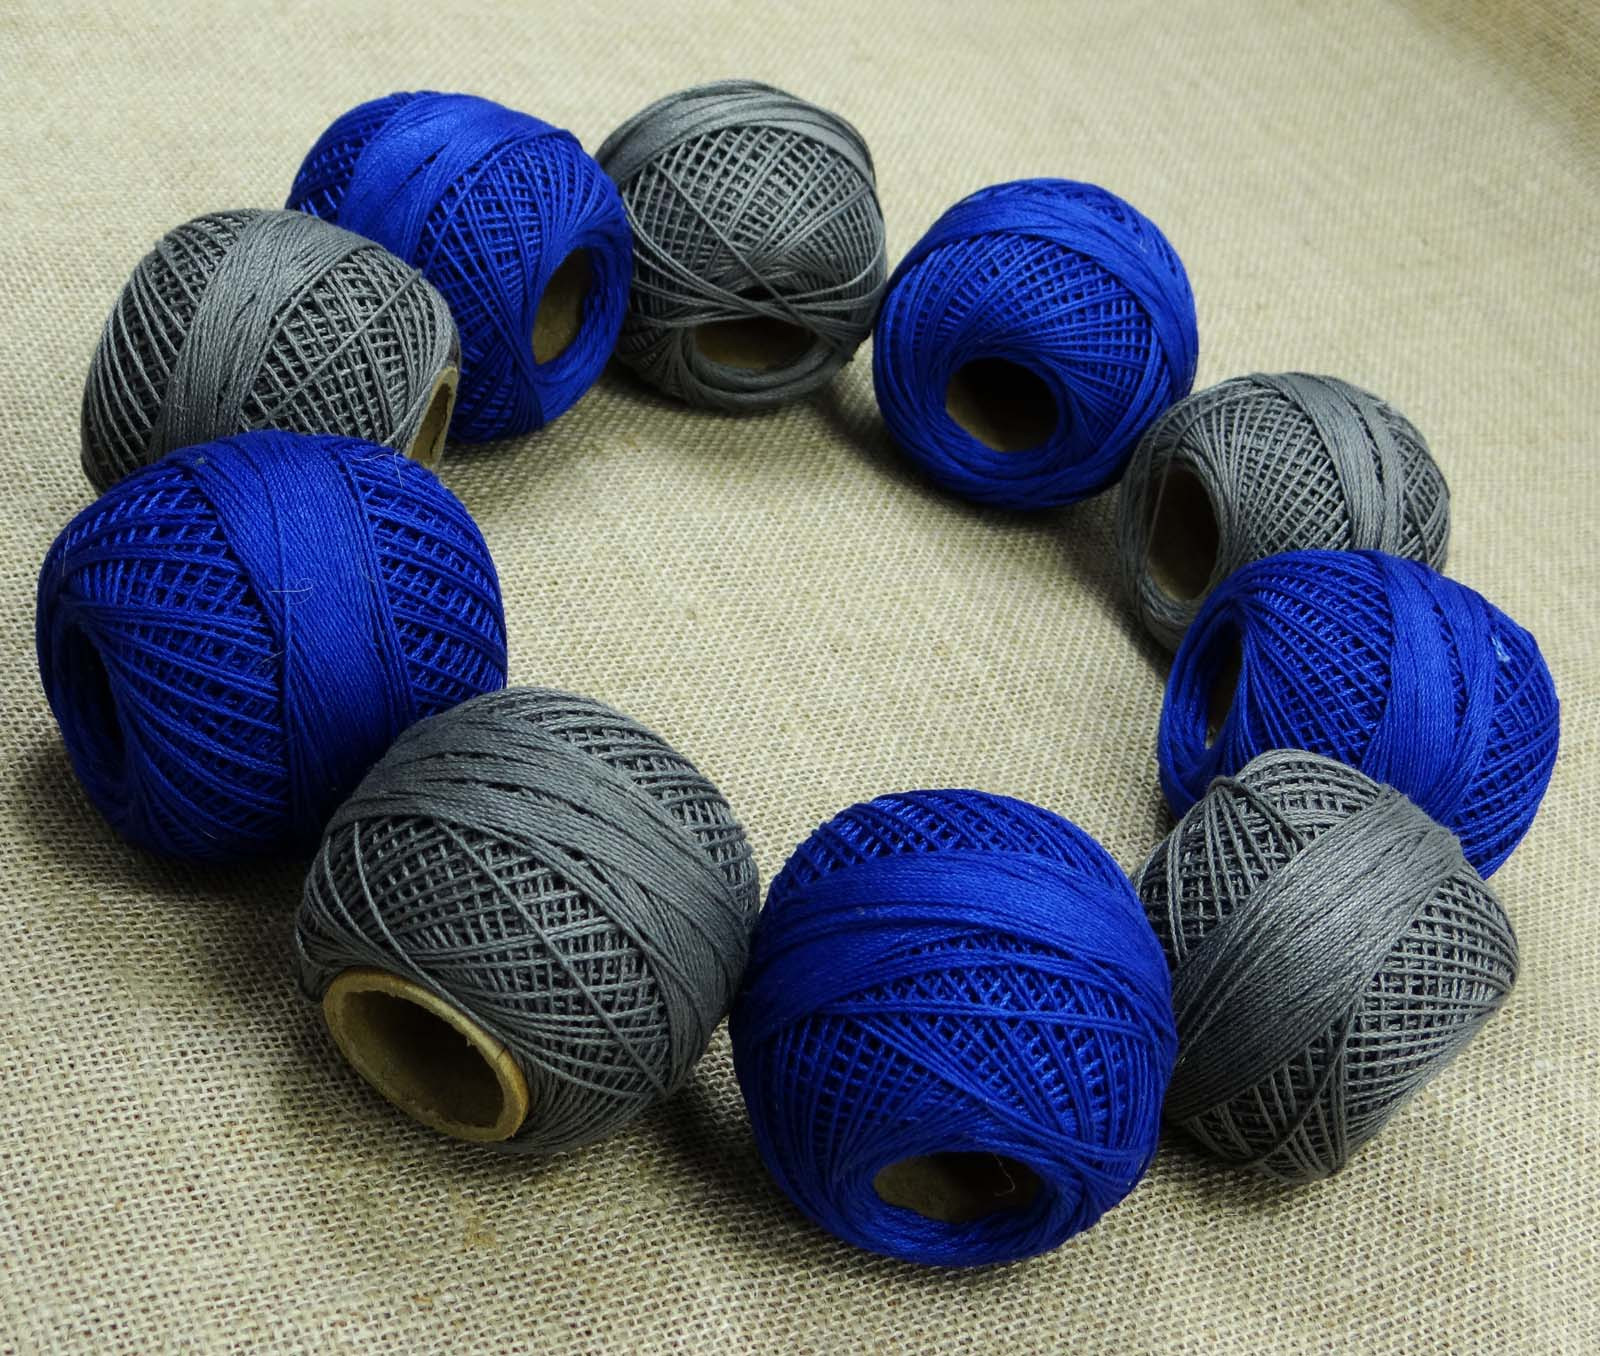 Unique Grey Embroidery Crochet Cotton Yarn Spun Mercerized Skein Crochet Cotton Thread Of New 50 Pics Crochet Cotton Thread